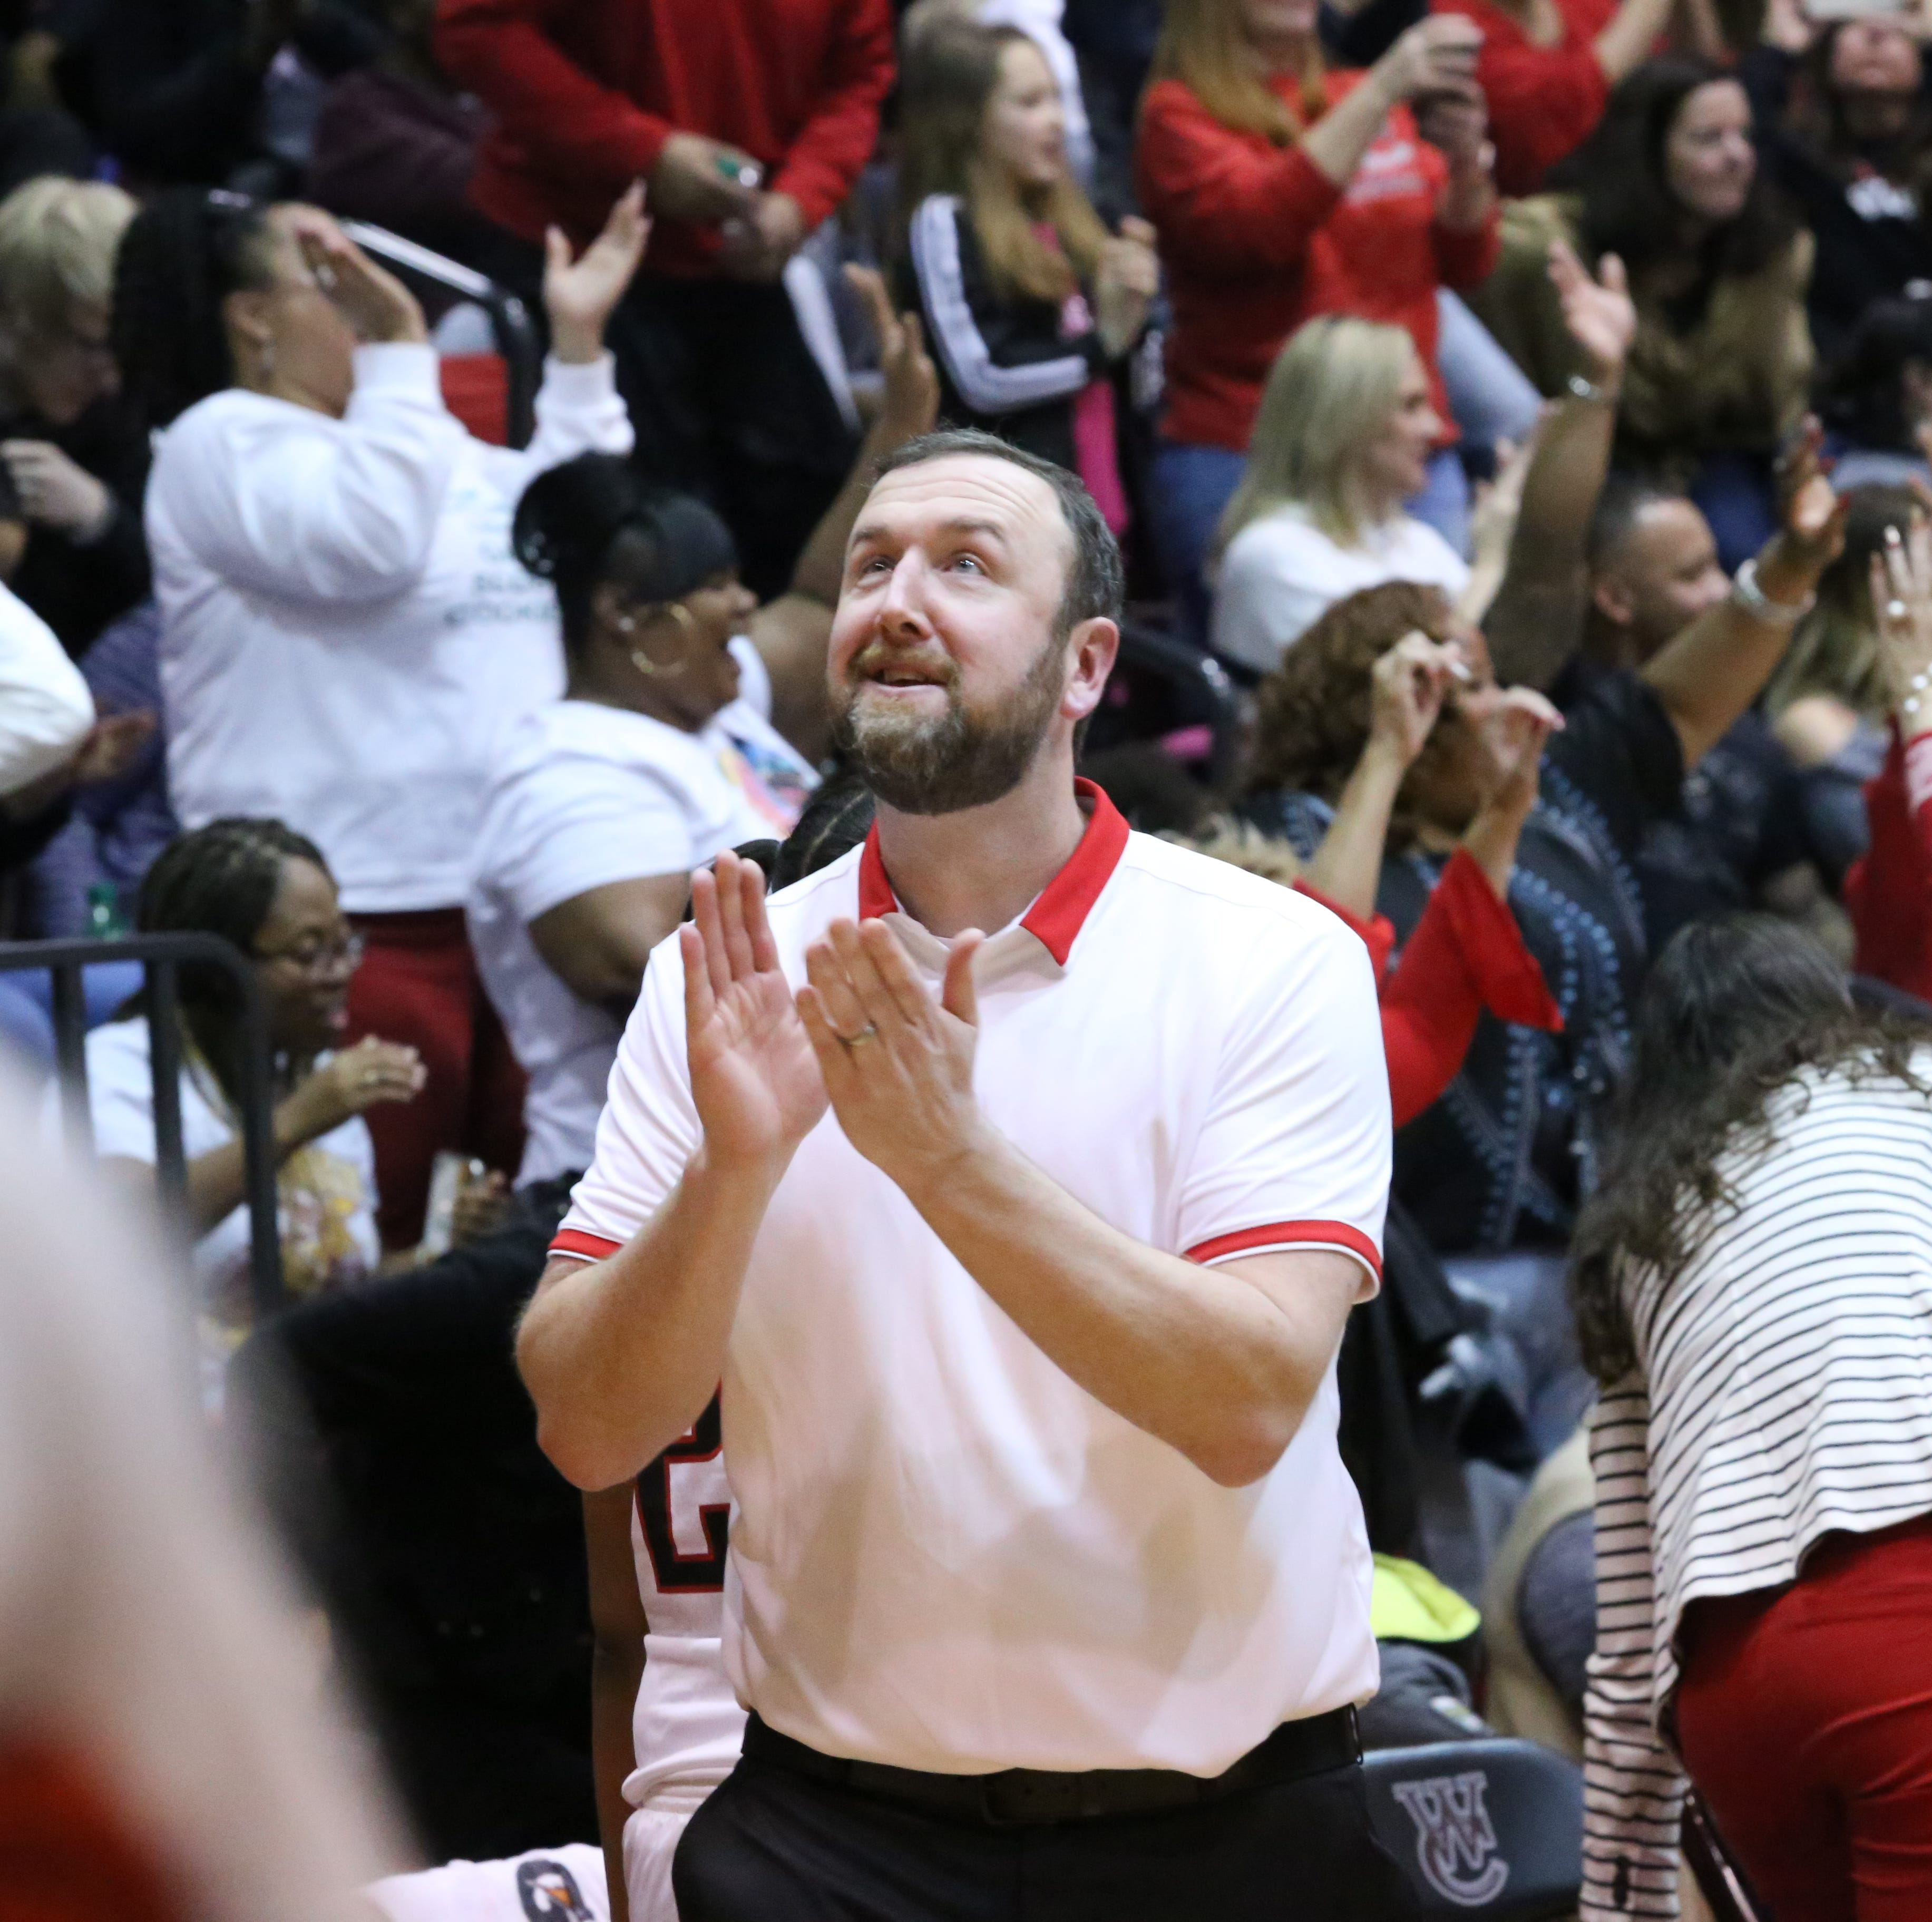 Rossview Lady Hawks finally get past Henry County for district championship